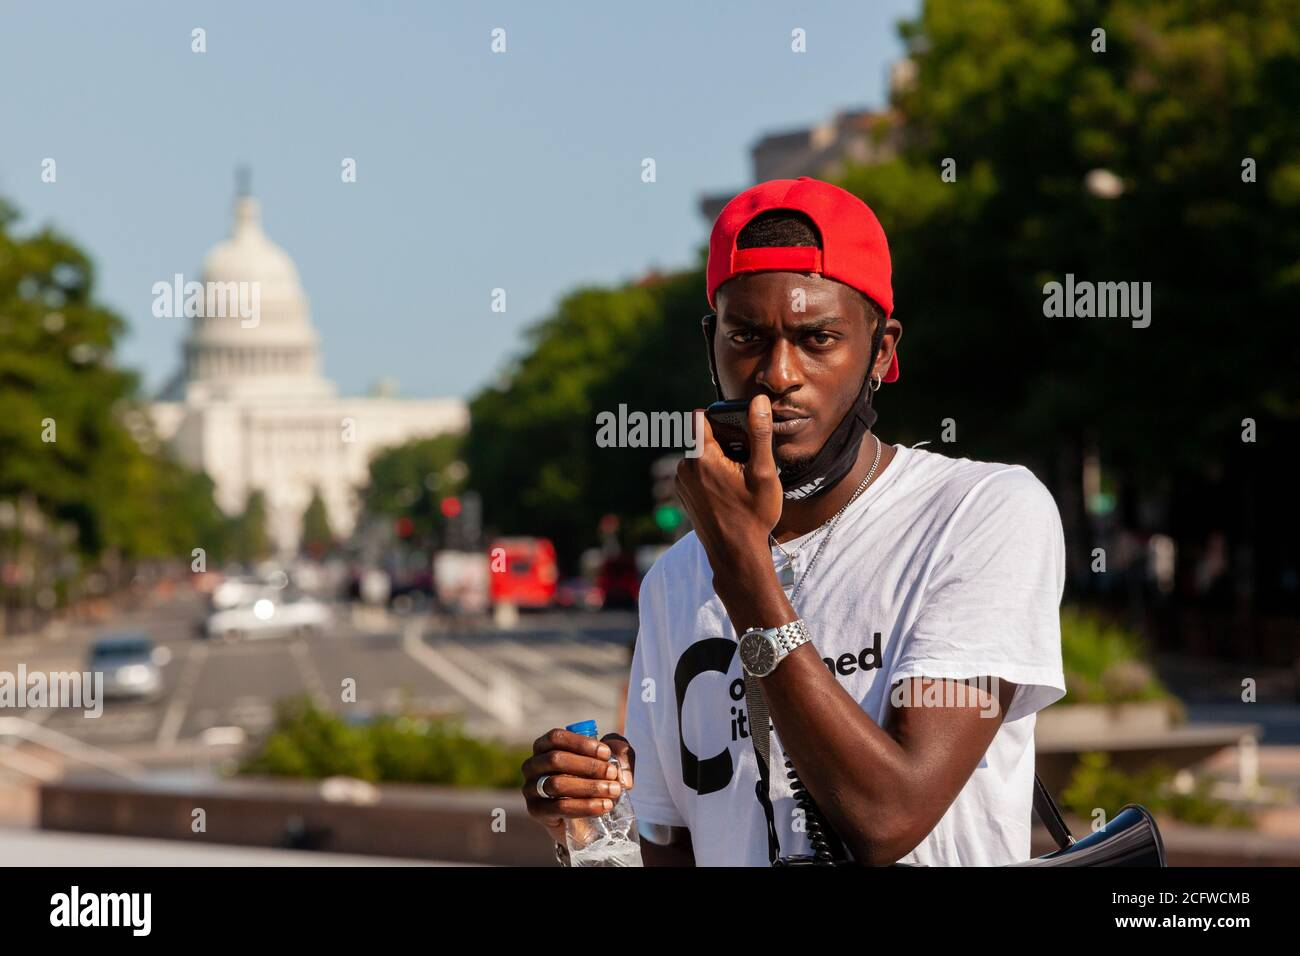 Washington, DC, USA, September 7, 2020. Pictured: Ty Hobson-Powell, founder and director of policy of Concerned Citizens of DC, concluded Let Freedom Sing with an appeal to all to vote. Let Freedom Sing was a community-building protest and voter registration event by the Freedom Day Foundation and Head Count. Credit: Allison C Bailey/Alamy Credit: Allison Bailey/Alamy Live News Stock Photo